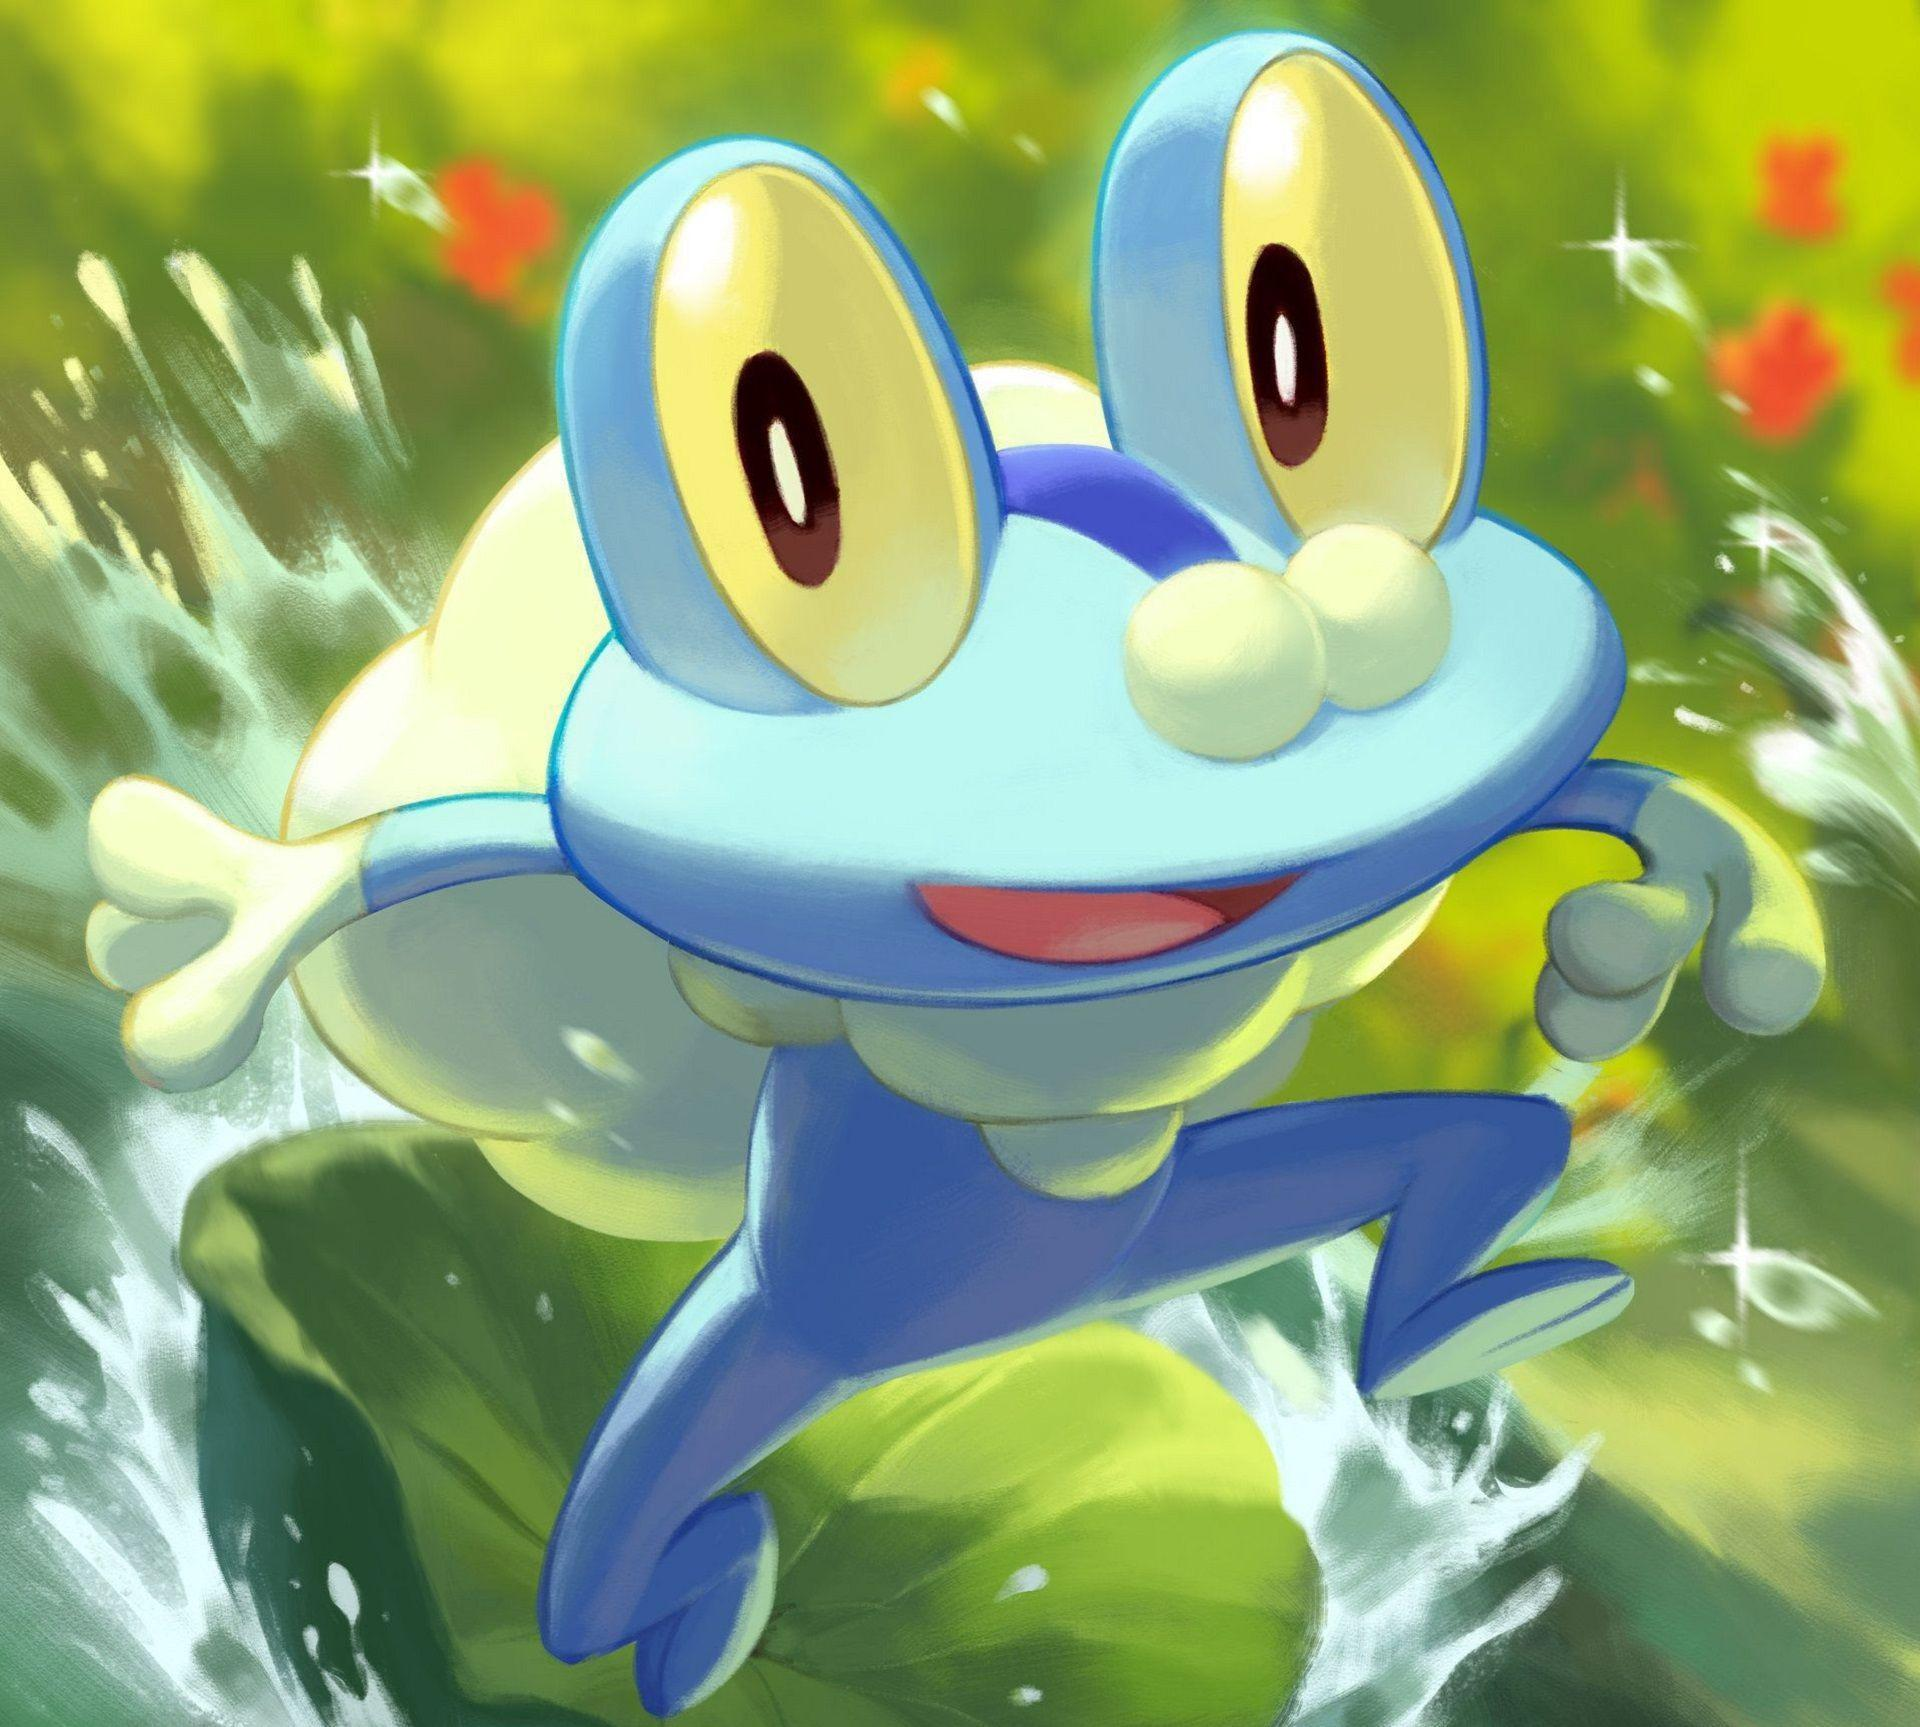 Froakie Wallpapers Image Photos Pictures Backgrounds